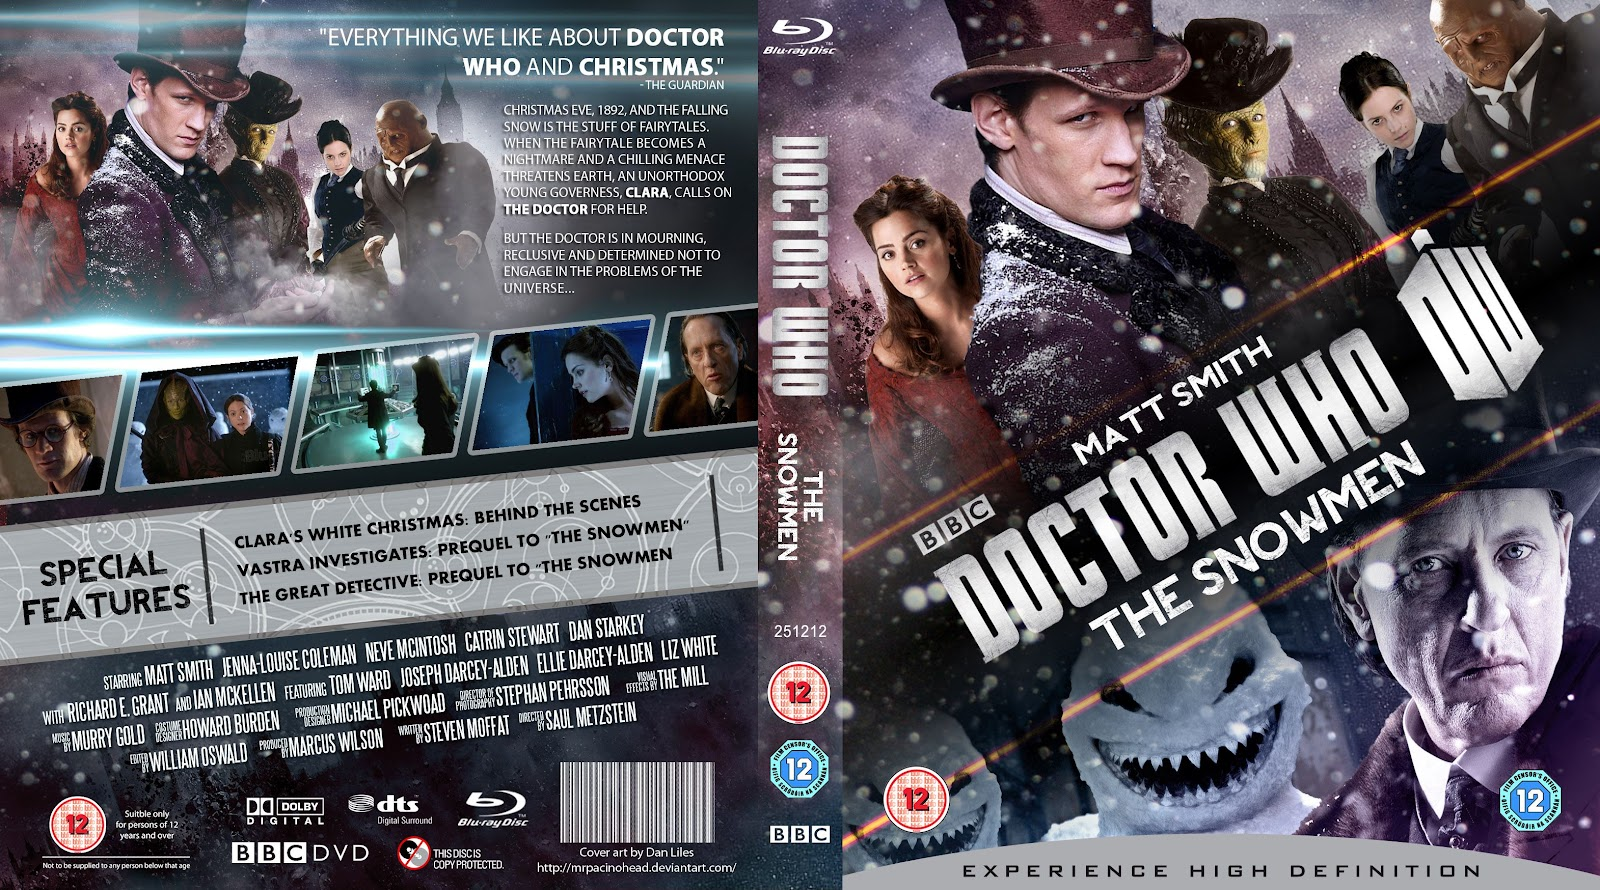 Capa Bluray Doctor Who The Snowmen